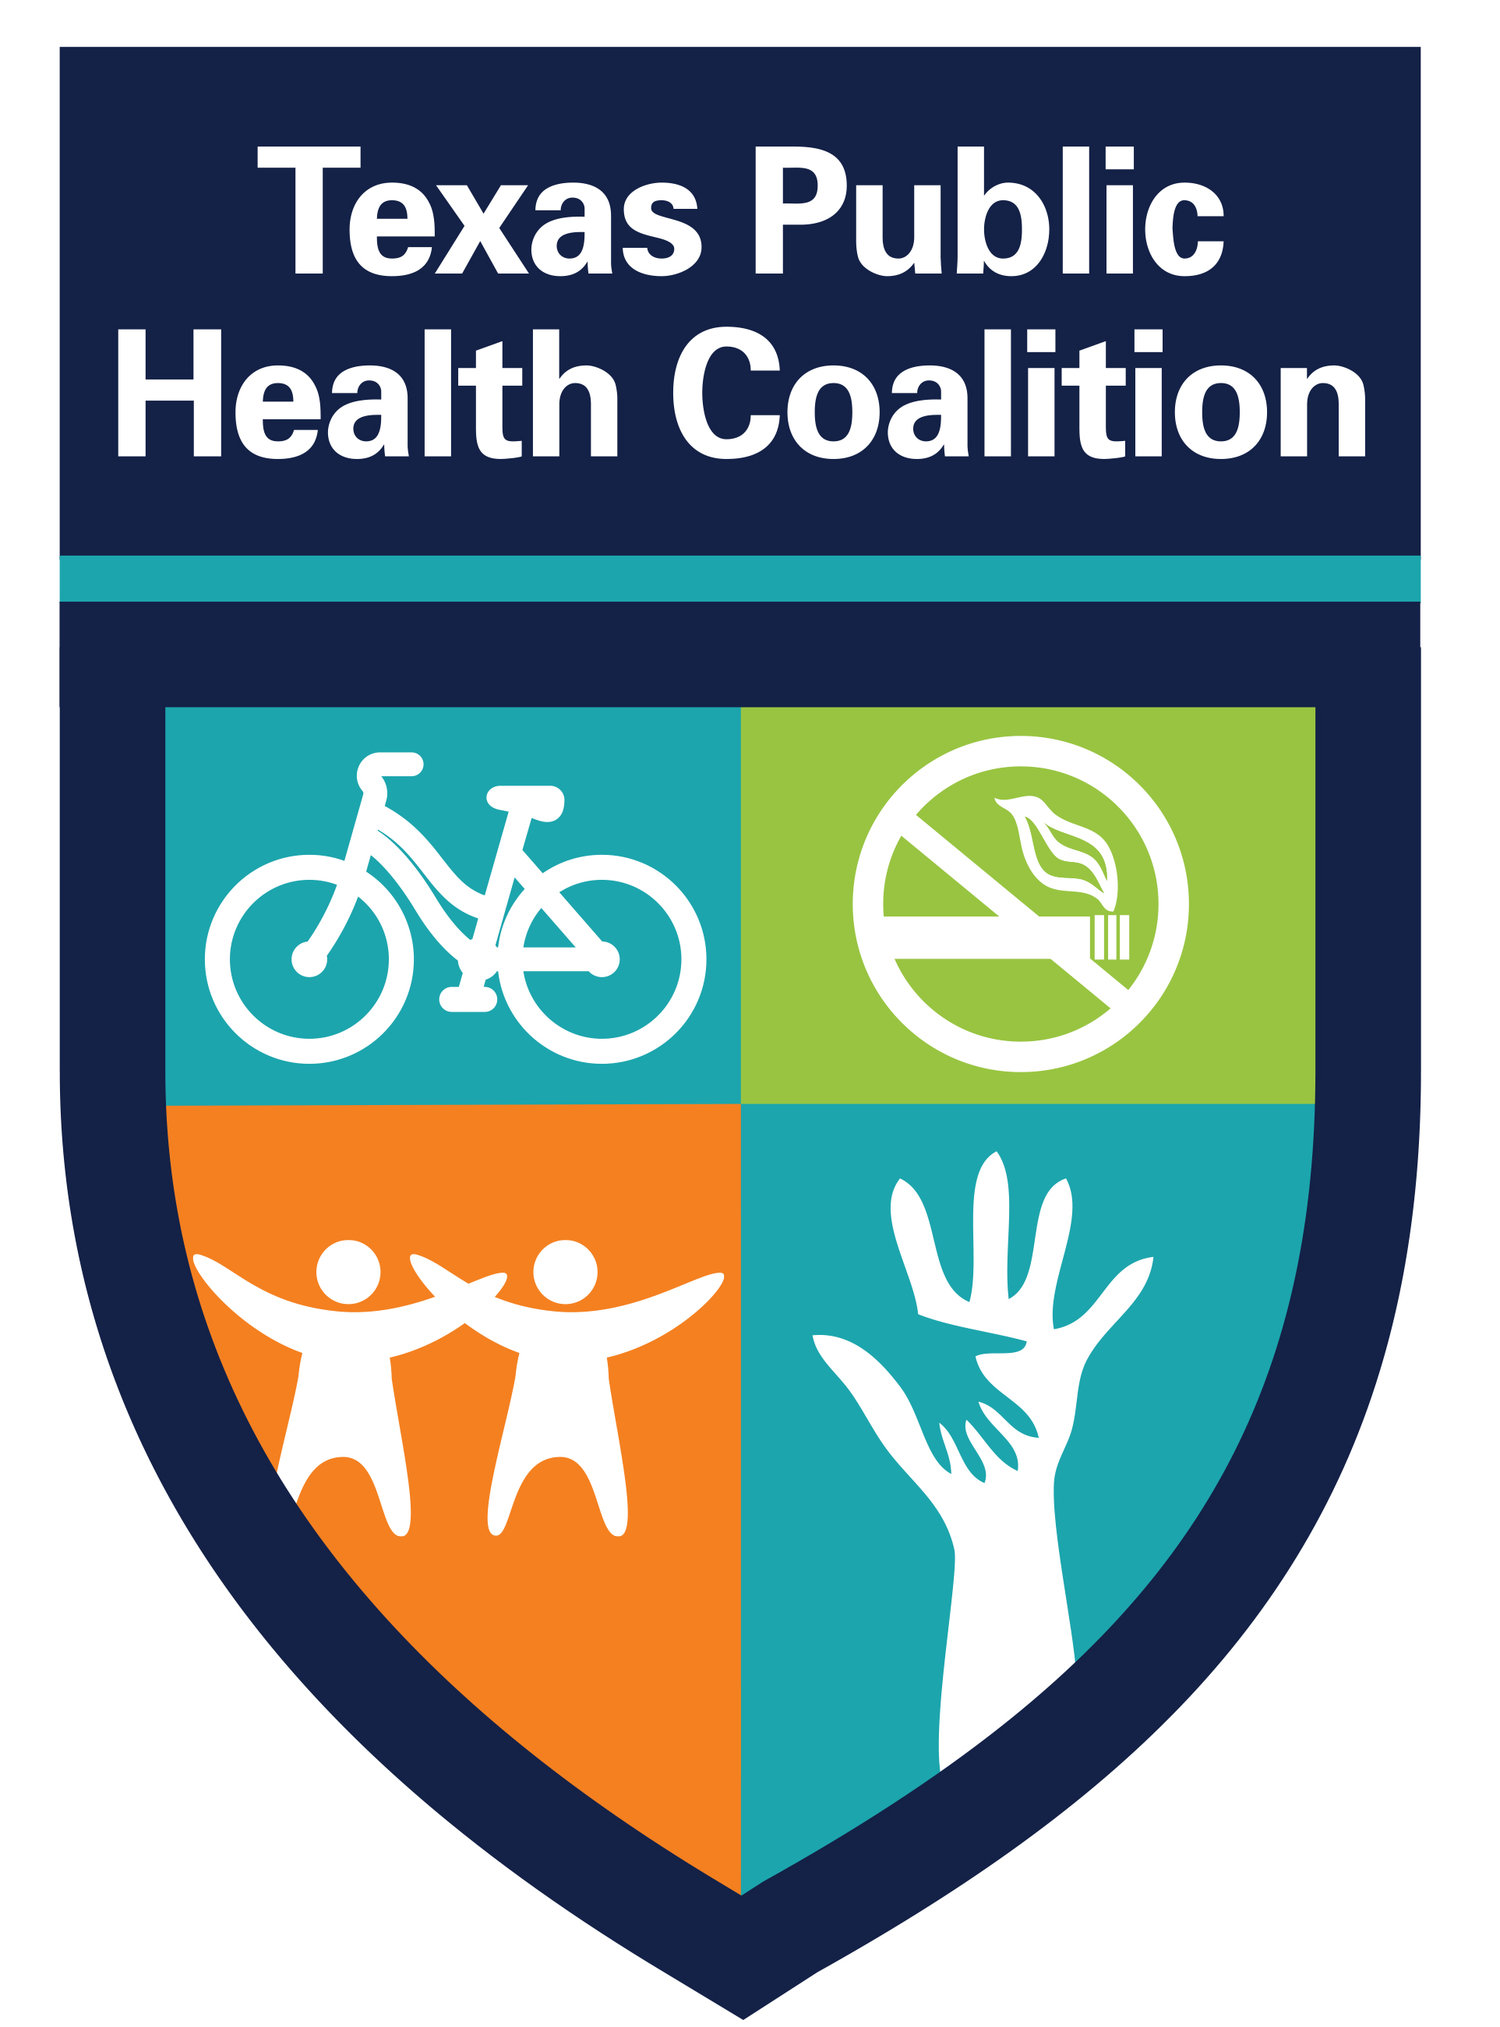 Texas Public Health Coalition